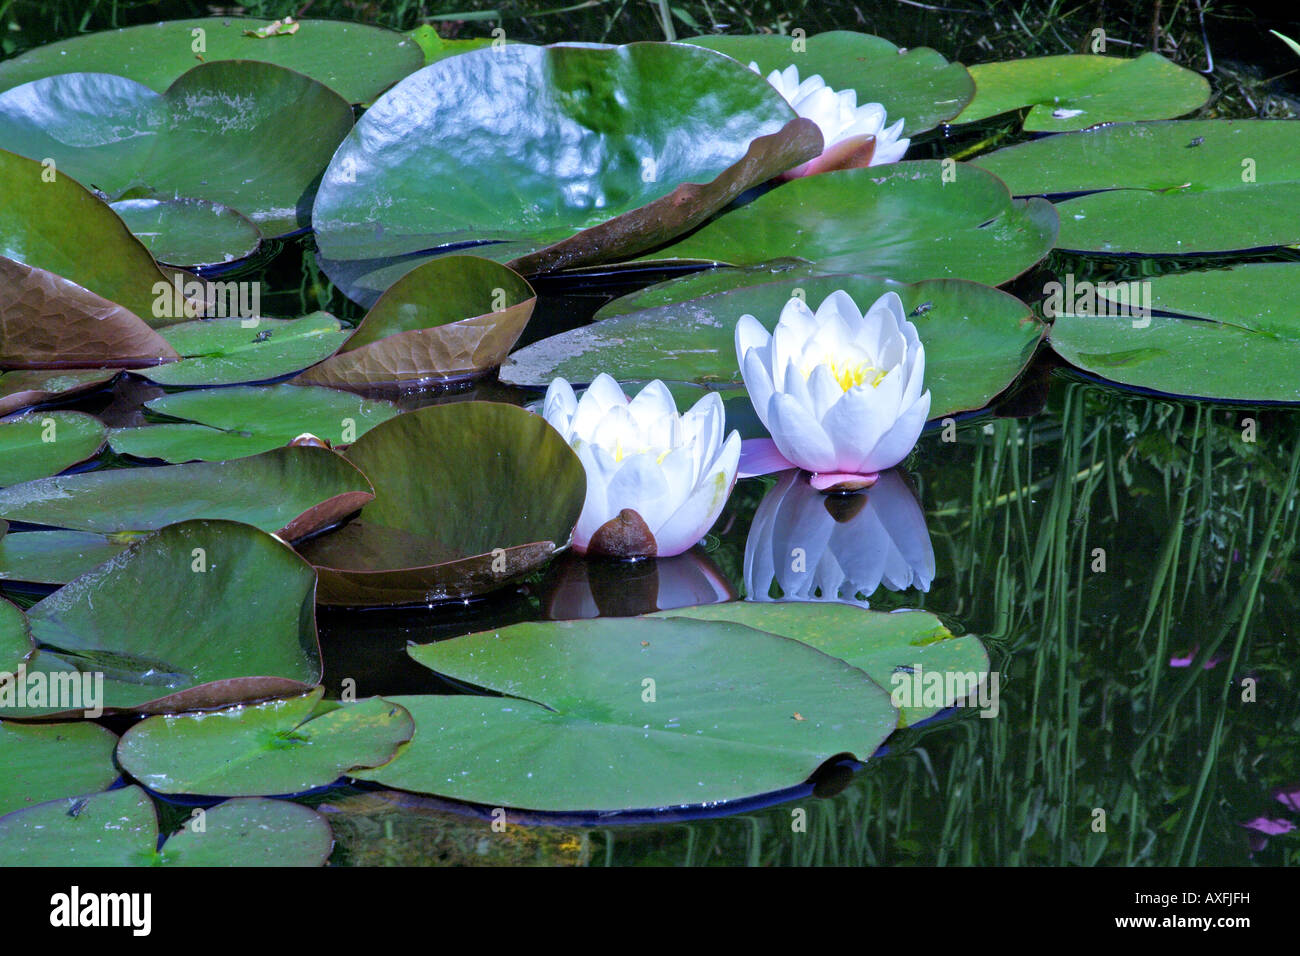 water-lilies in pond Stock Photo